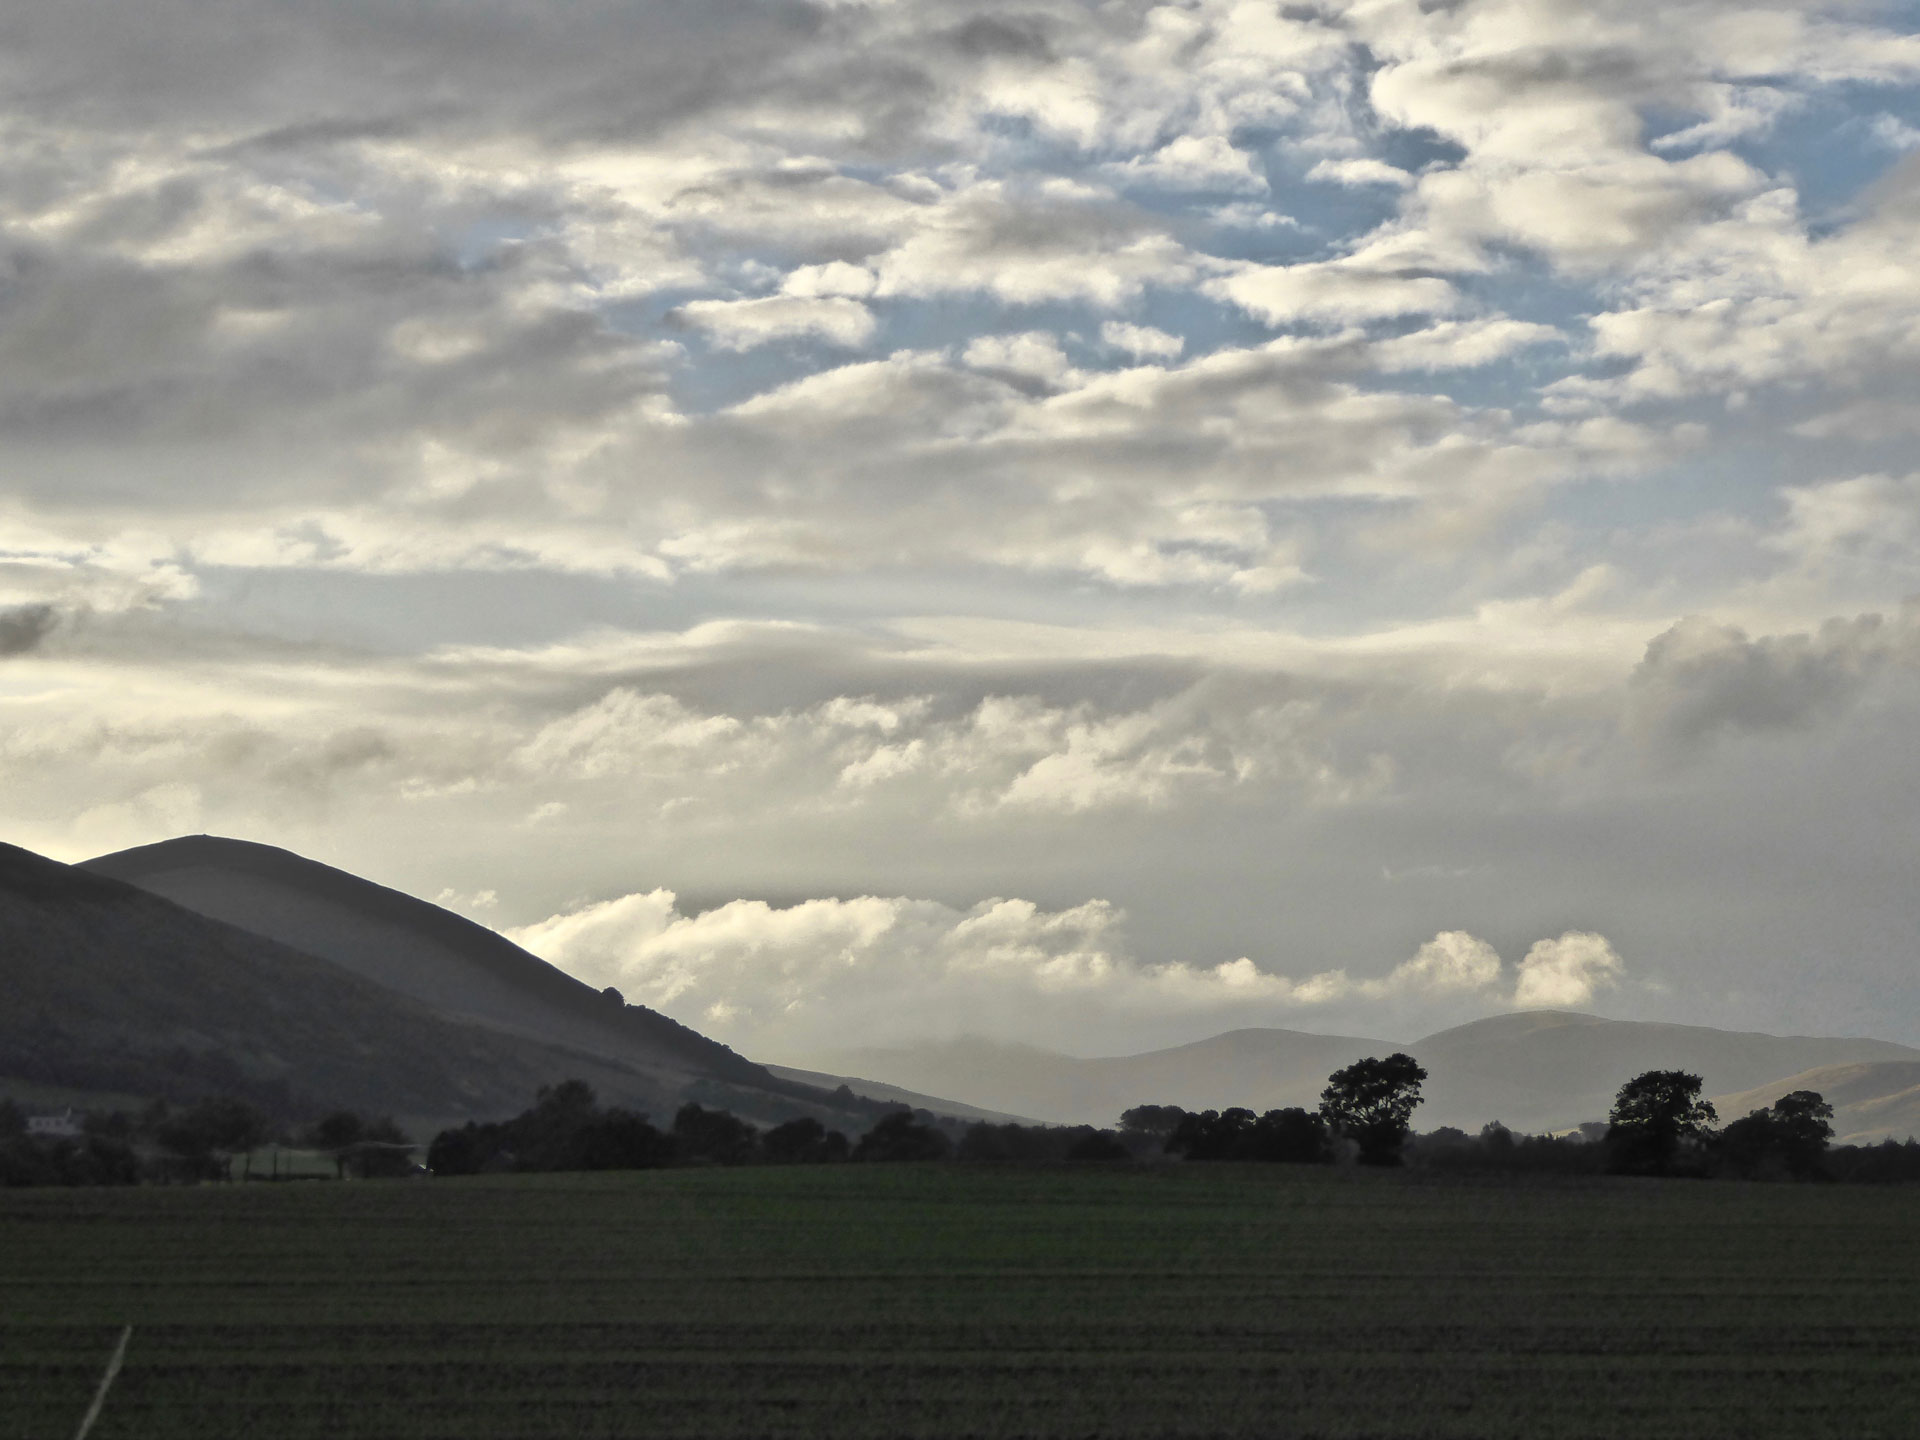 Clouds loom over Cheviot hills